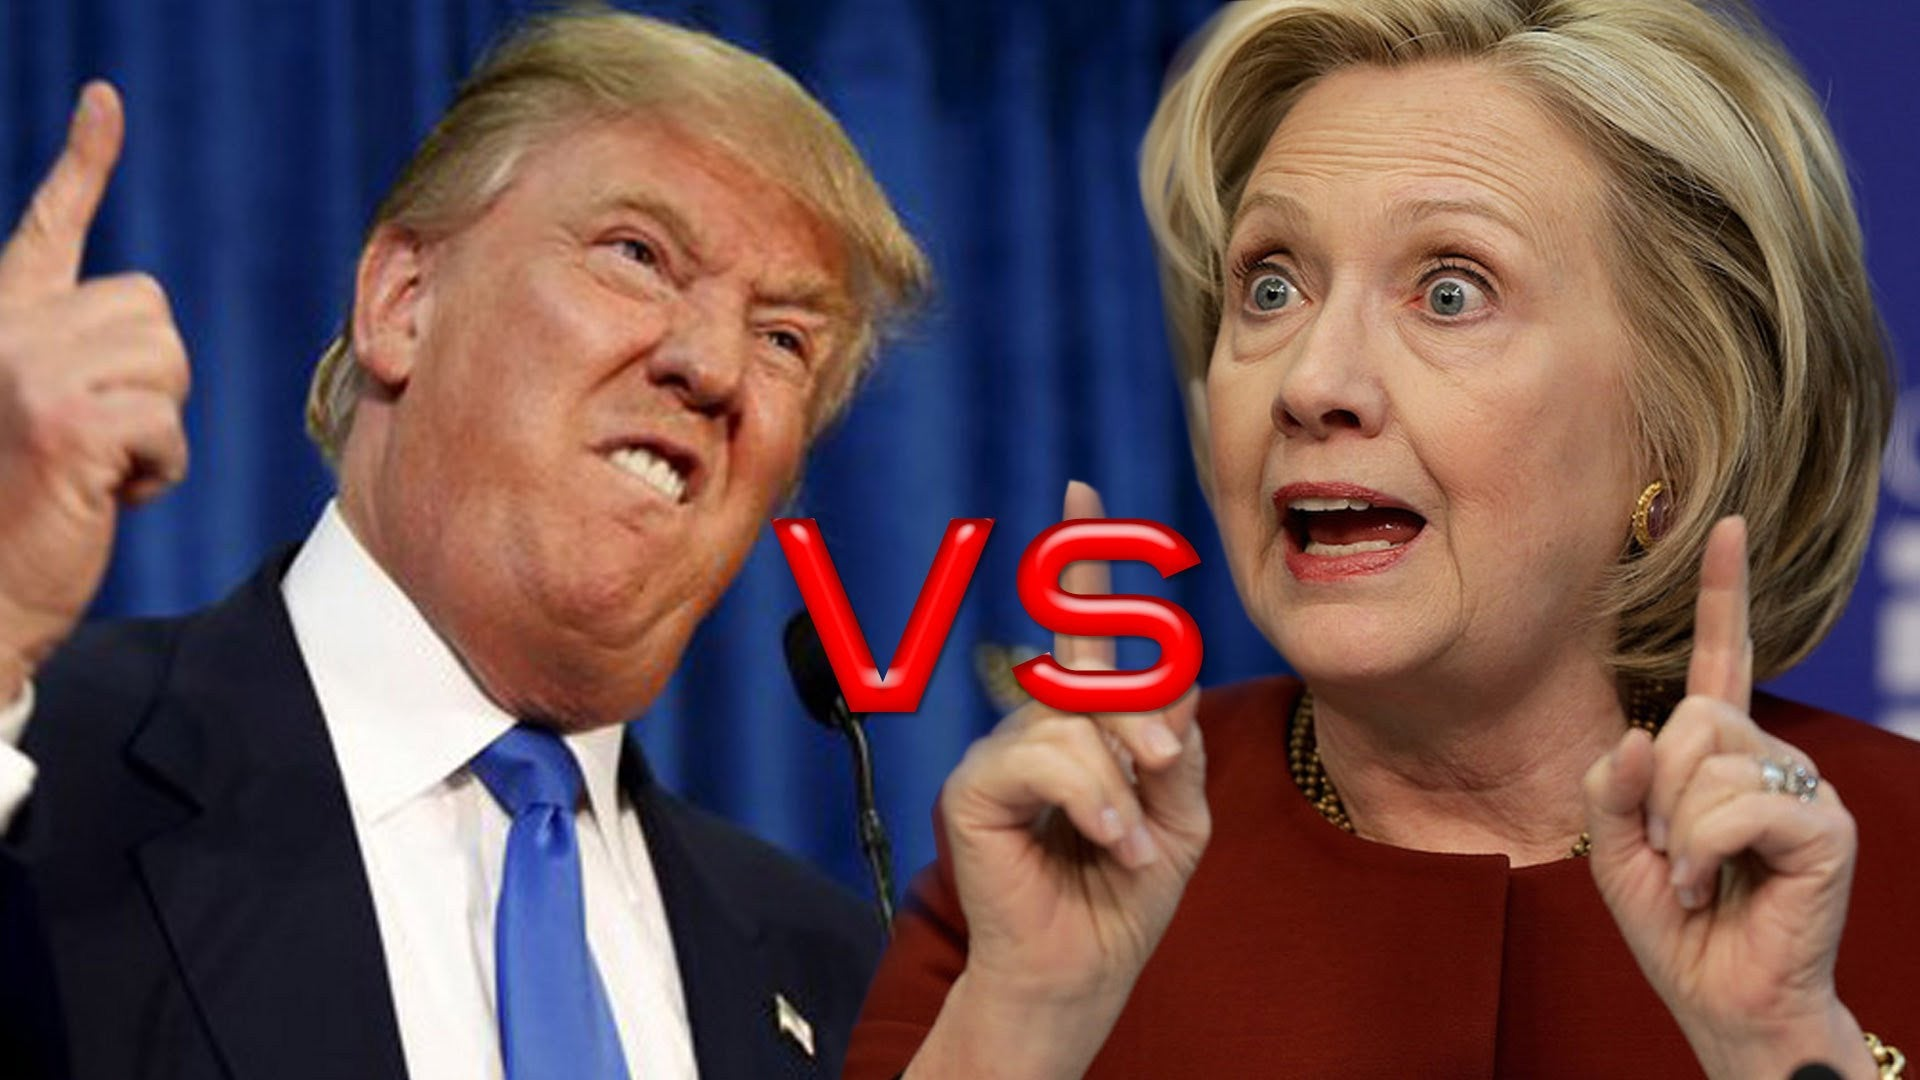 Second presidential debate Monday 9am